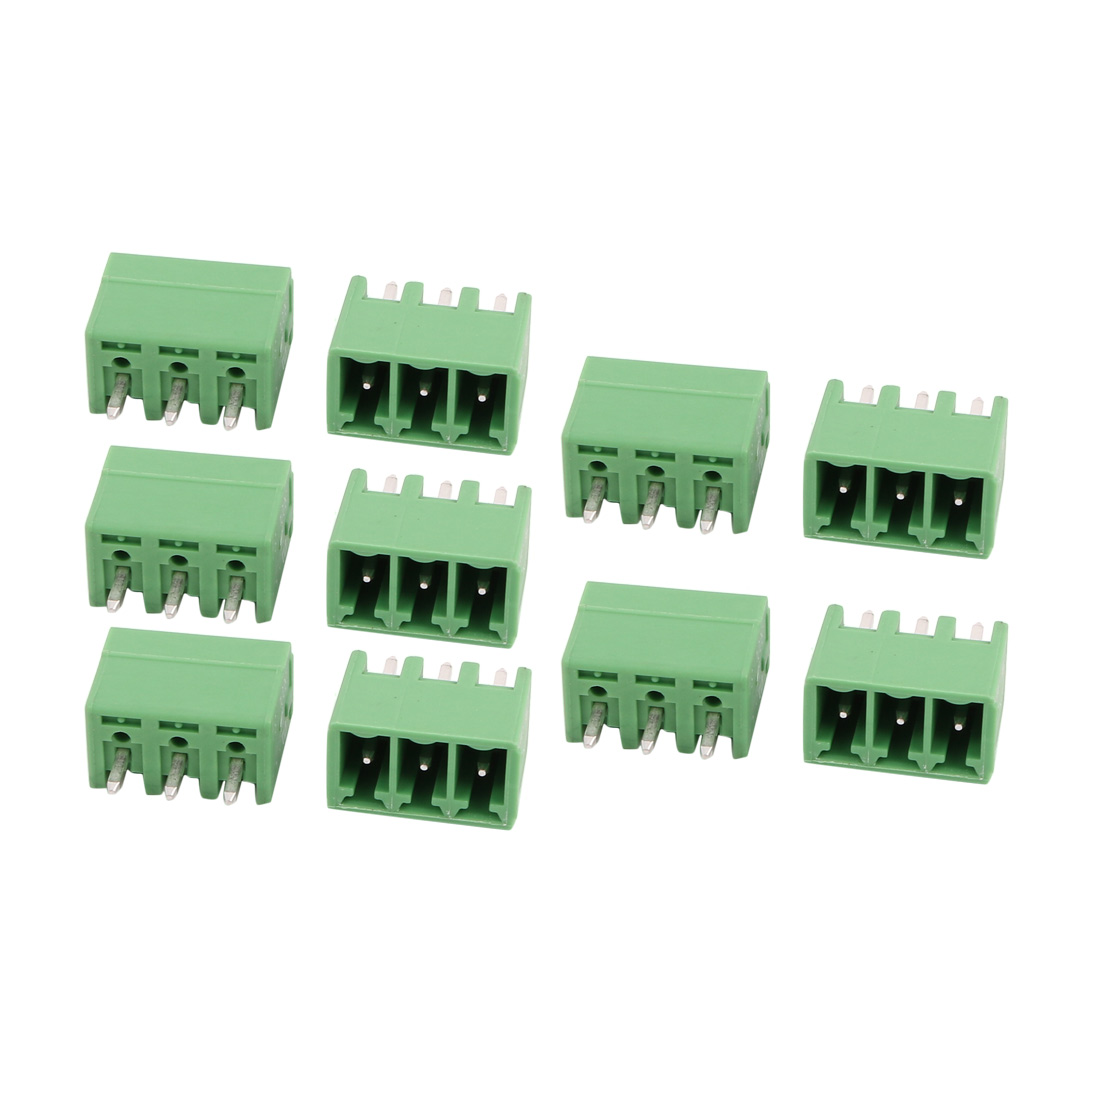 10Pcs AC300V 8A 3.81mm Pitch 3P Terminal Block Wire Connection for PCB Mounting